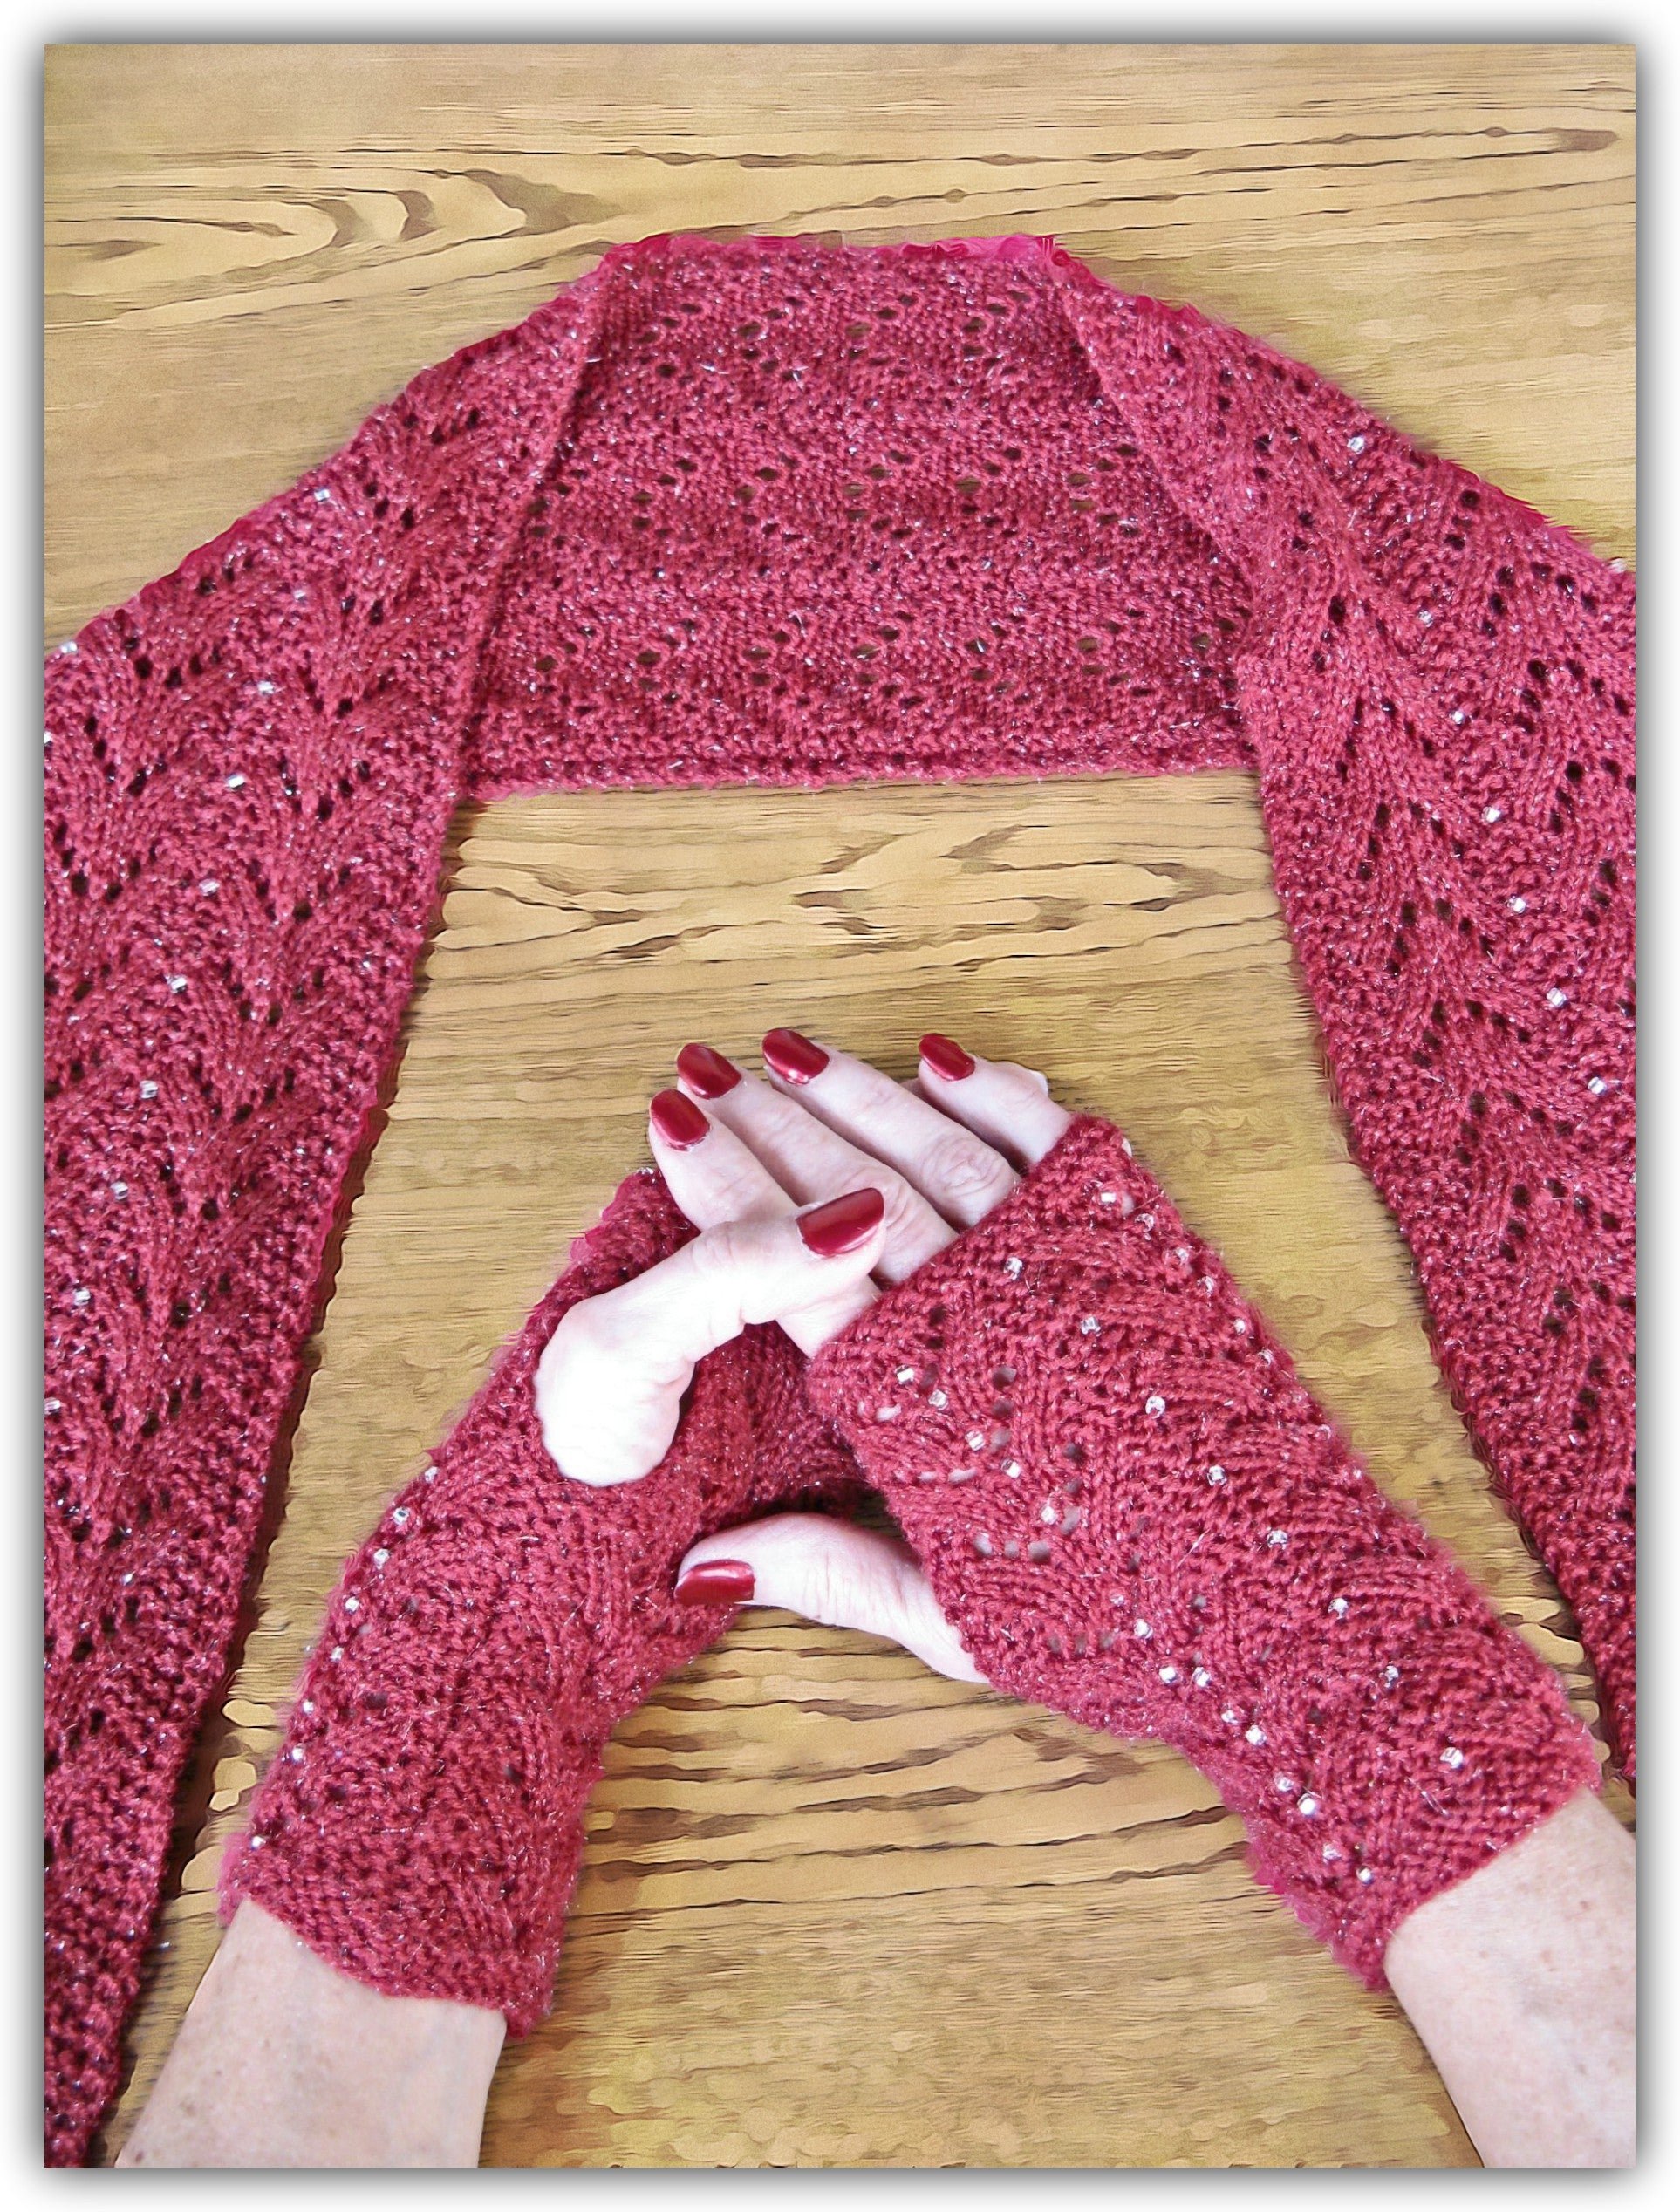 Beaded Lace Scarf Fingerless Gloves Designed By Eleanor Swogger